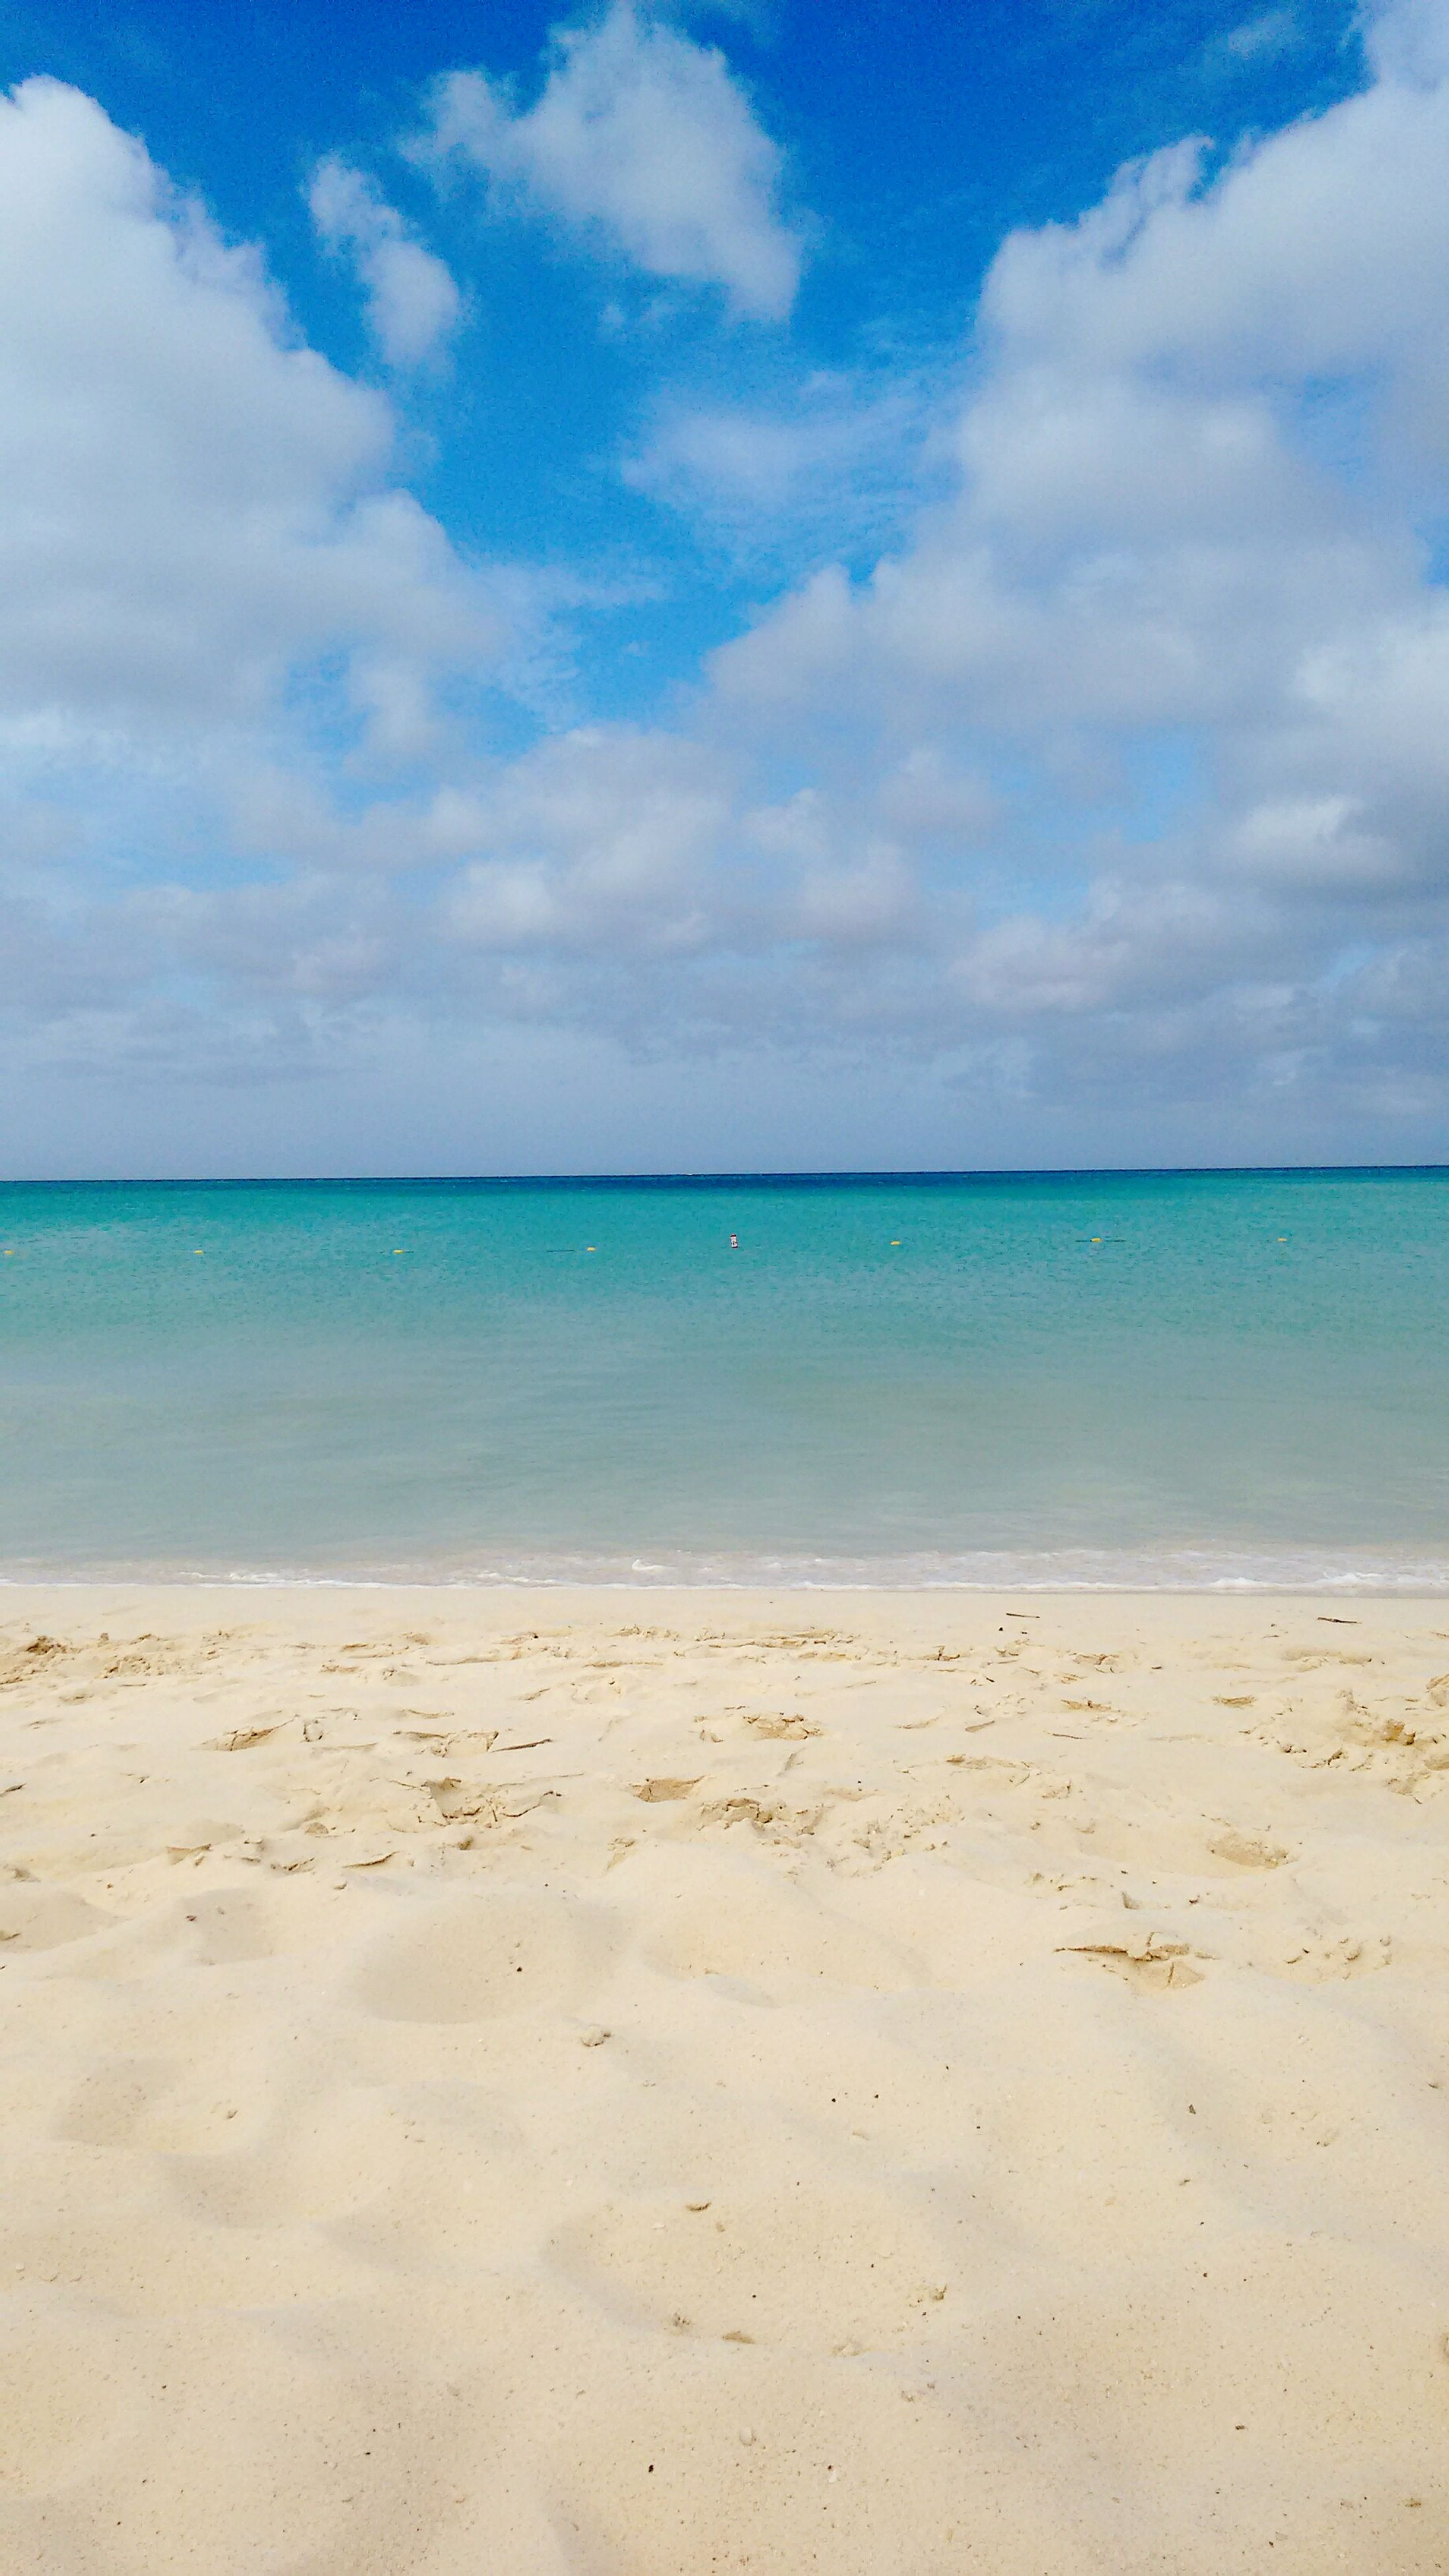 sea, beach, sky, horizon over water, nature, water, sand, scenics, beauty in nature, tranquility, tranquil scene, day, cloud - sky, outdoors, no people, blue, vacations